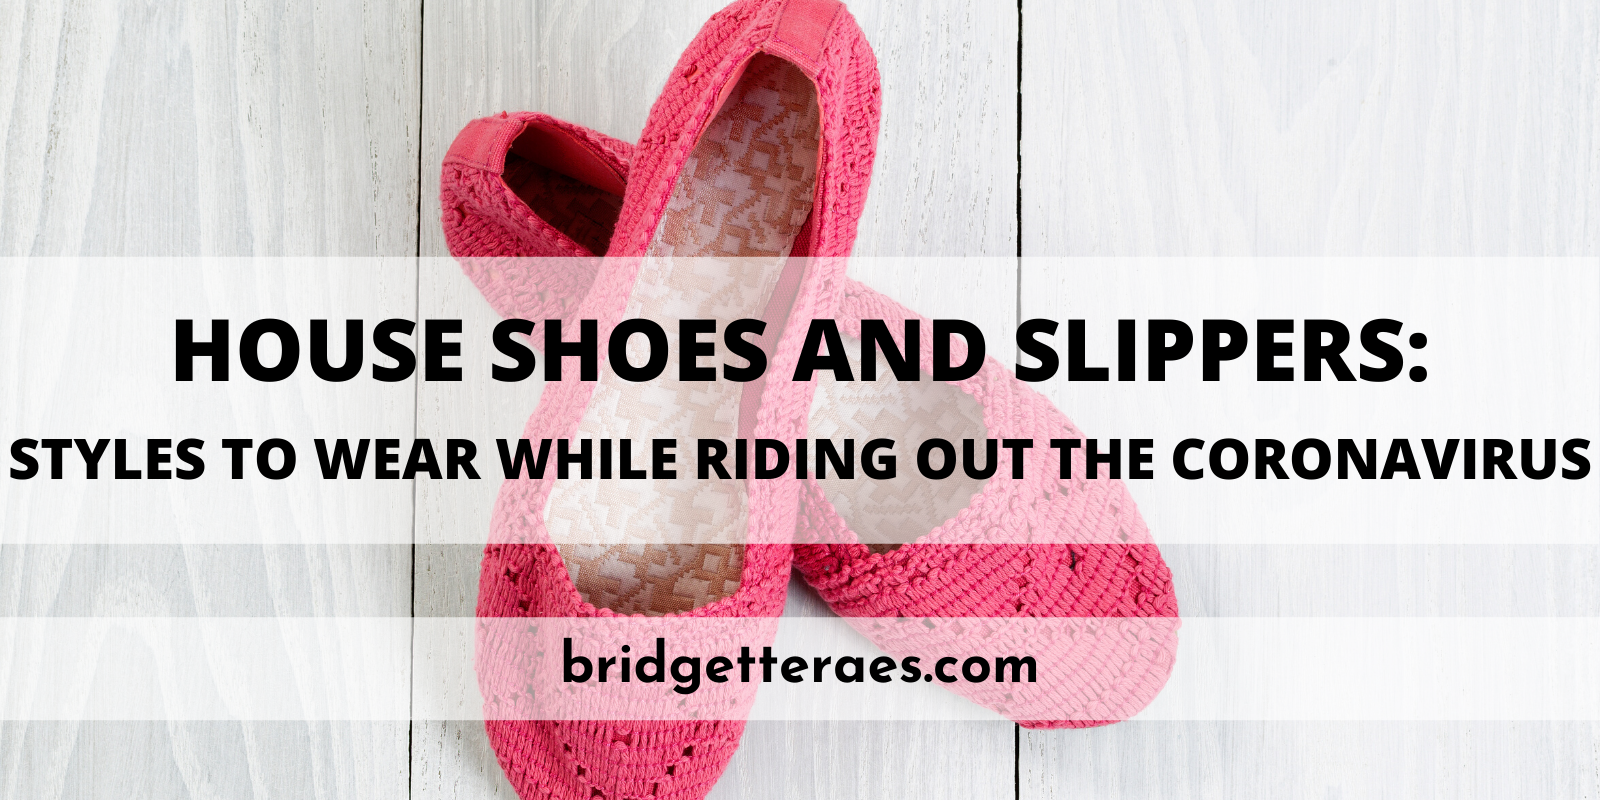 House Shoes and Slippers: Styles to Wear While Riding Out the Coronavirus